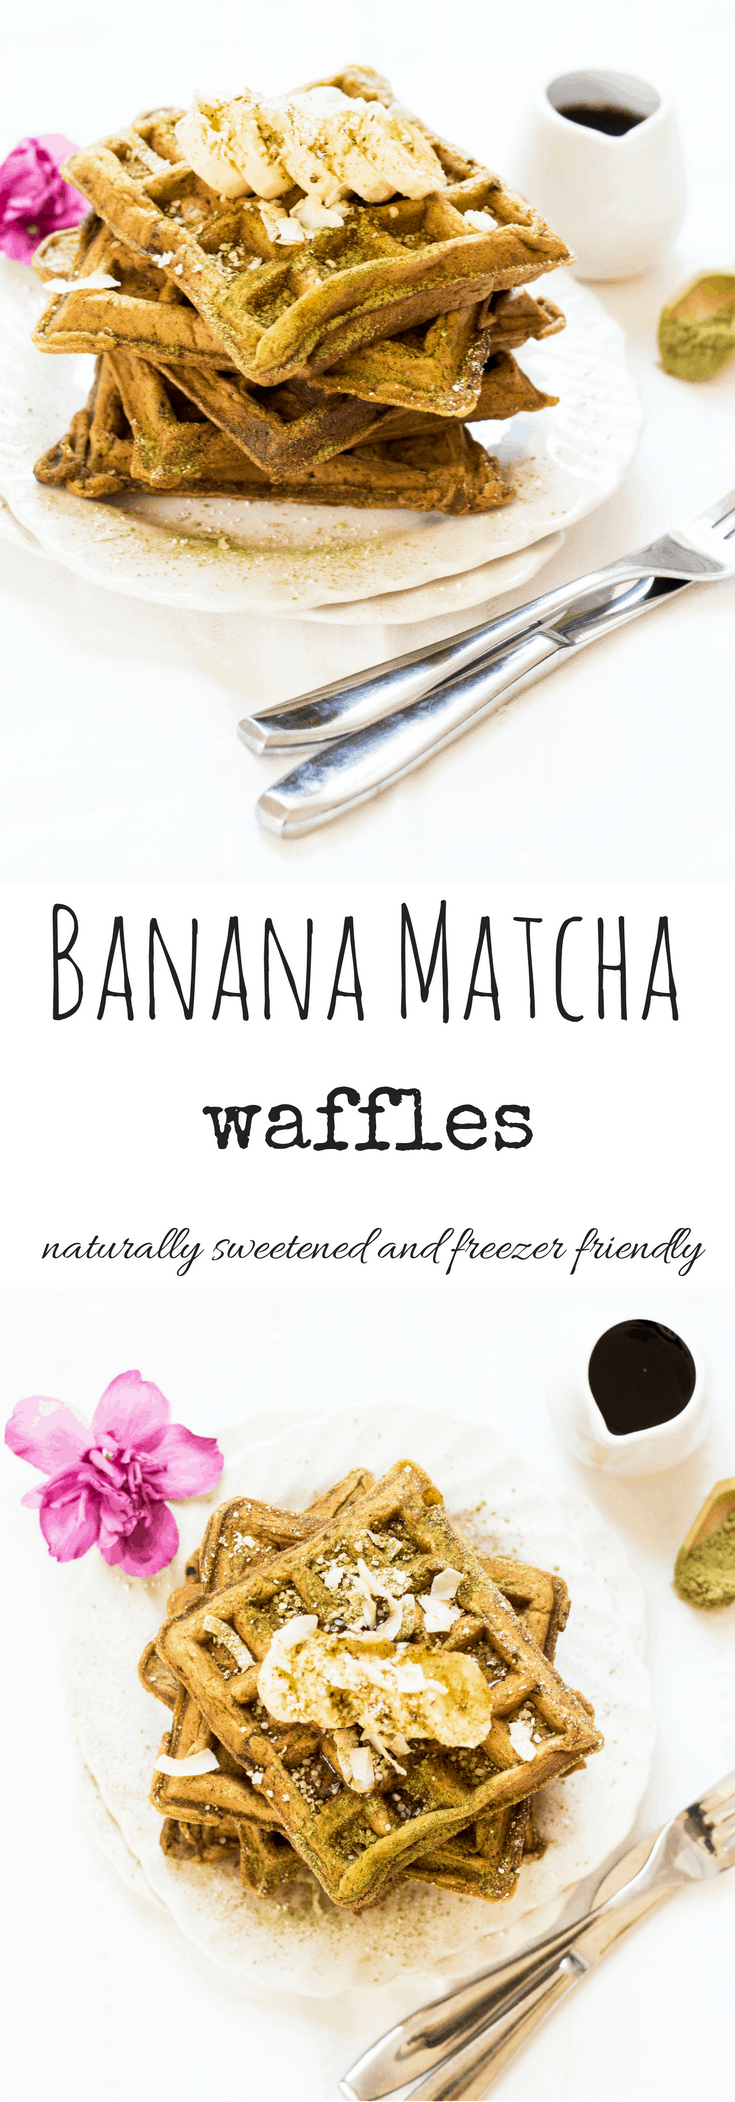 Simple and delicious Banana Matcha Waffles. Naturally sweetened and freezer friendly